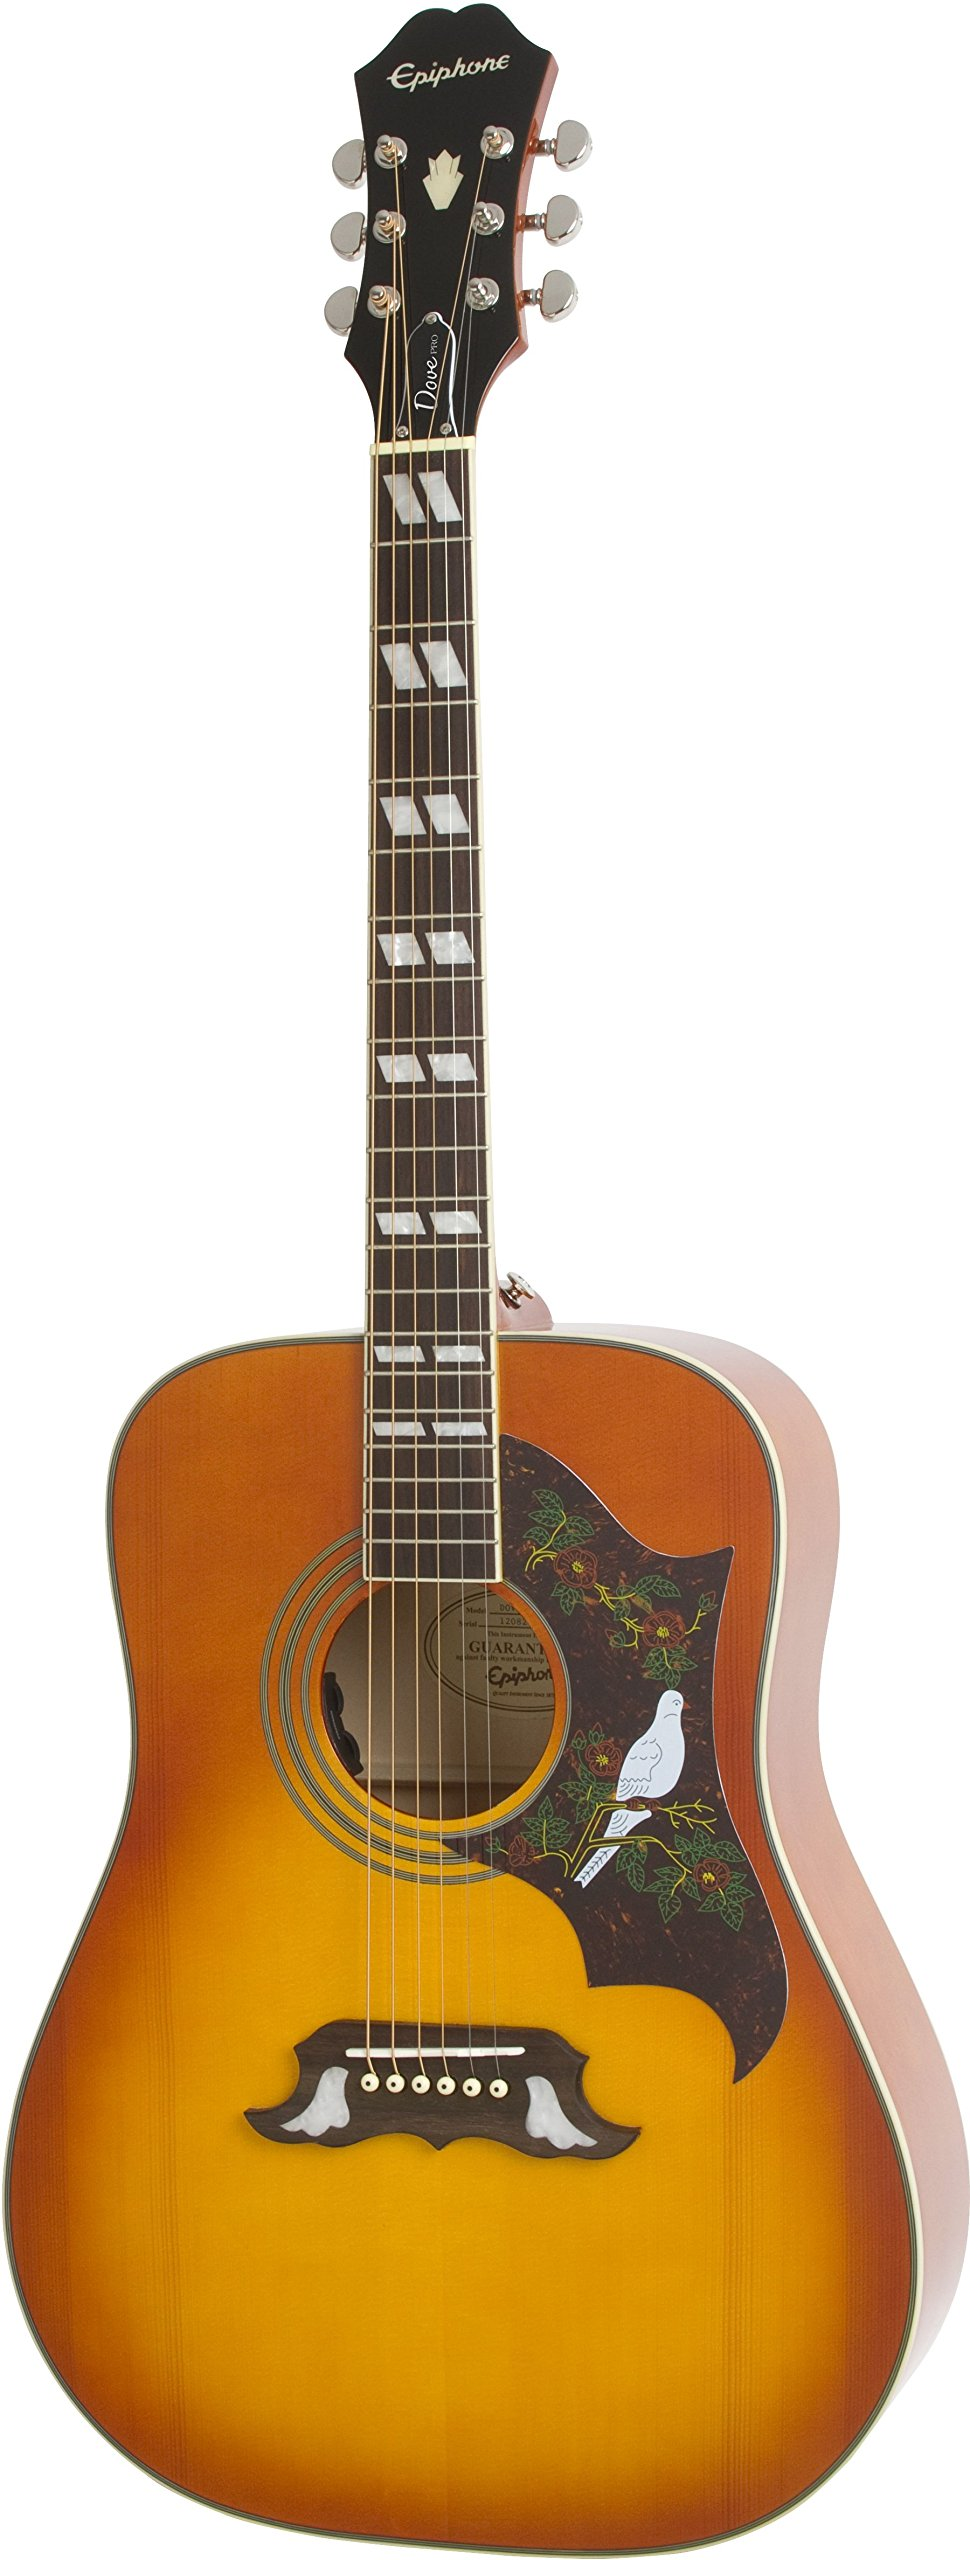 Epiphone DOVE PRO Solid Top Acoustic/Electric Guitar